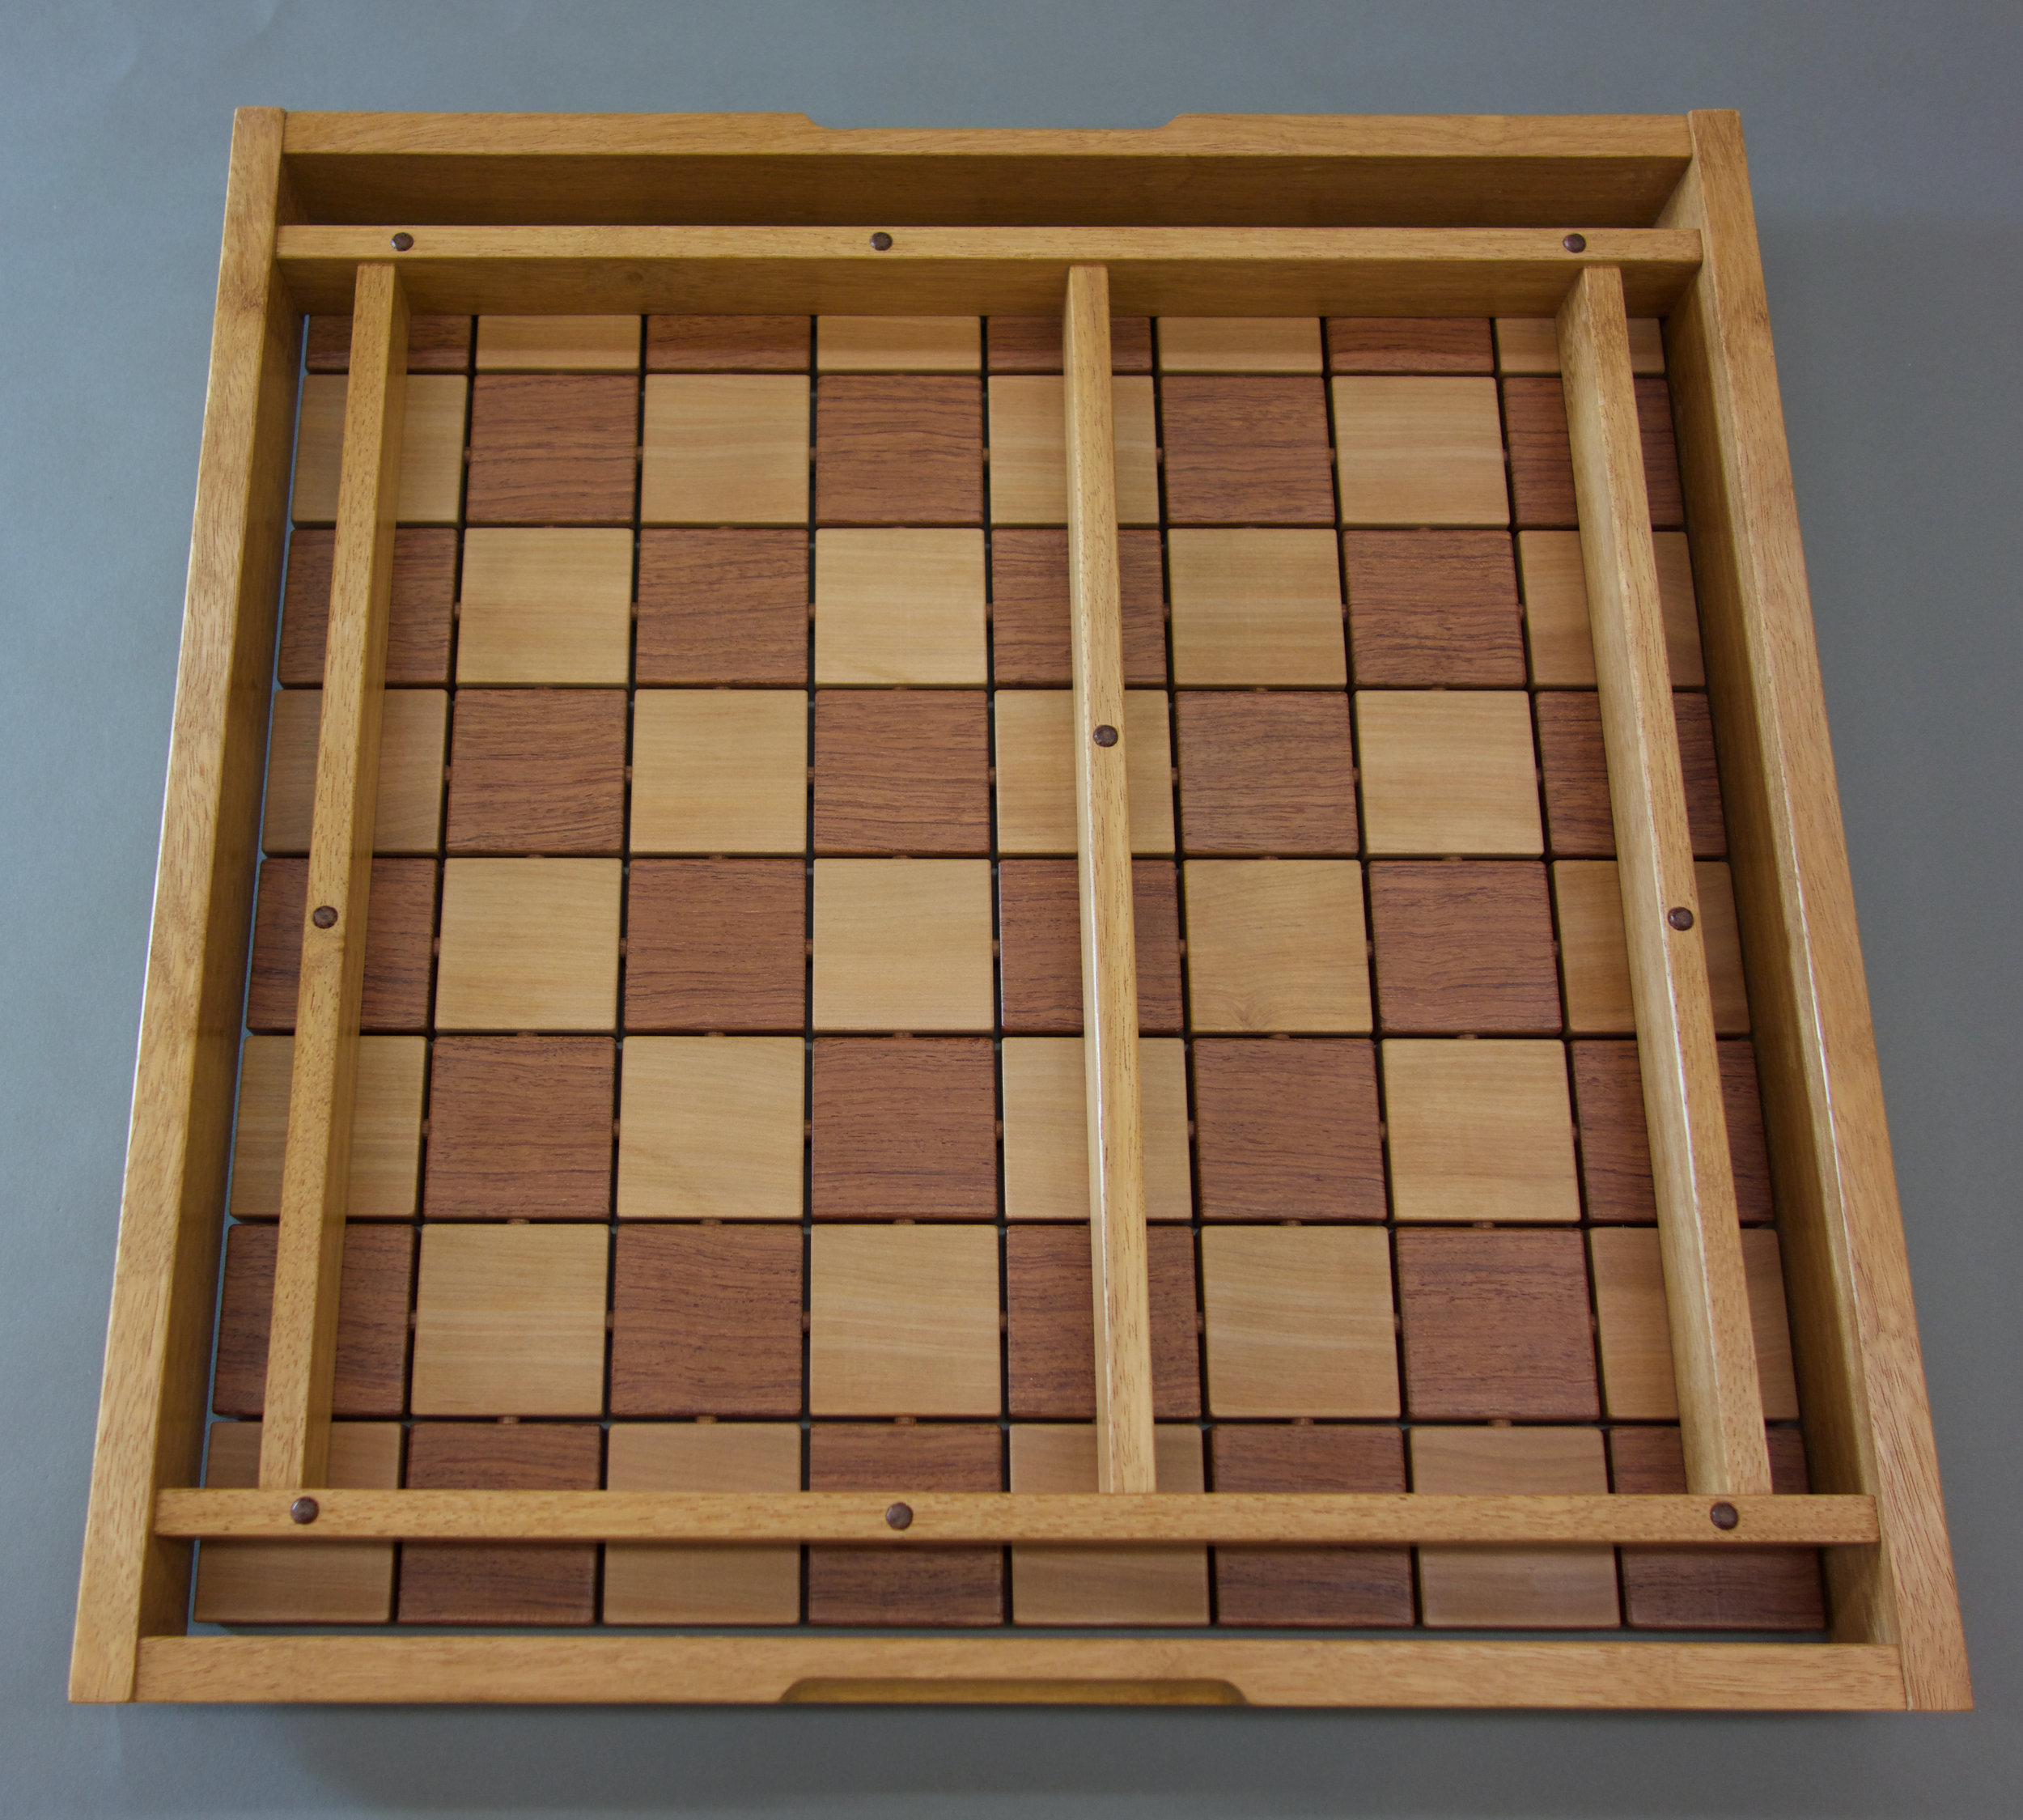 underside of Upward Spiral Chessboard by Sam Gapic